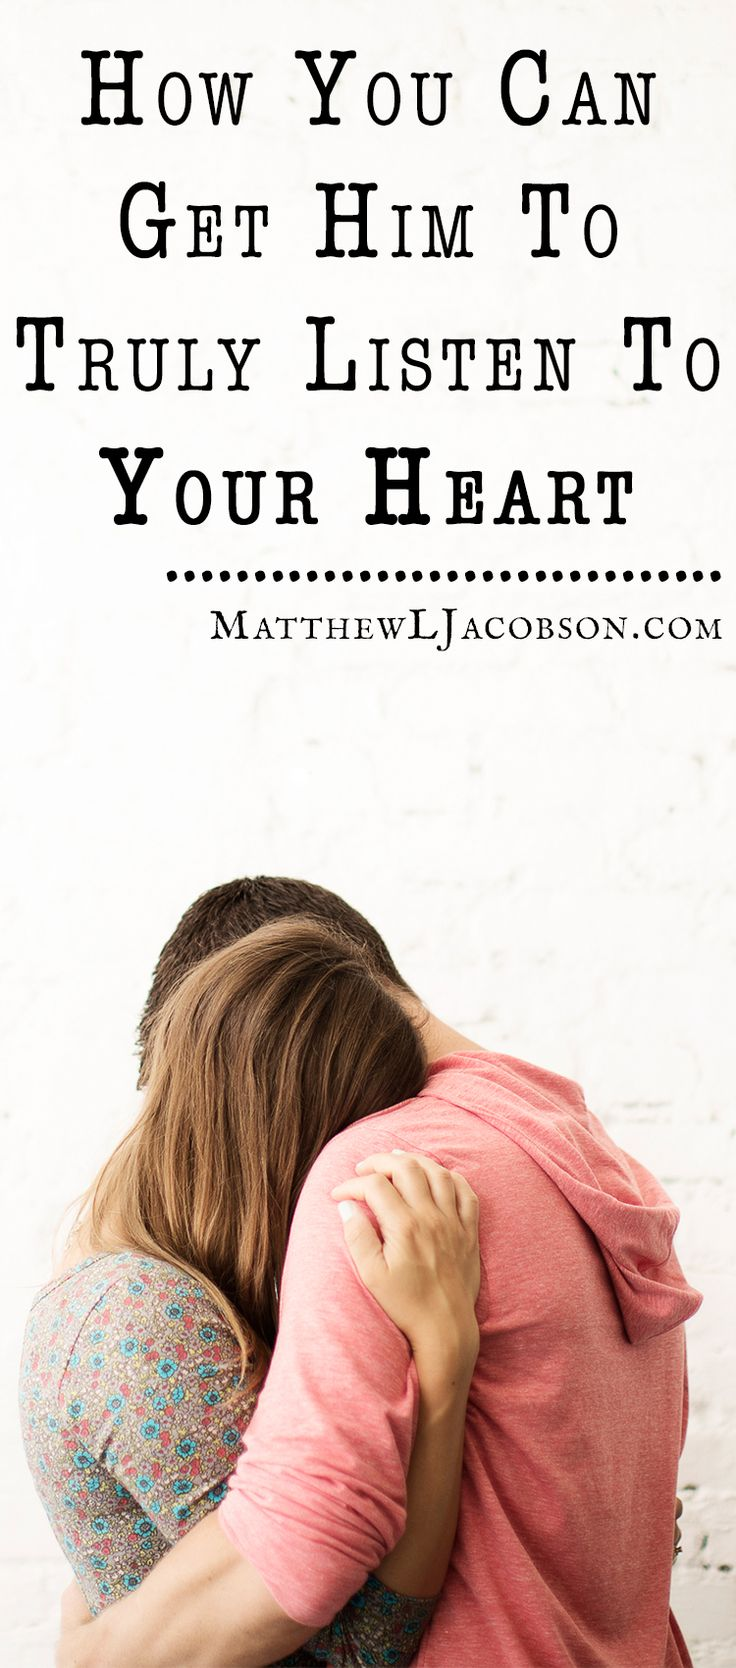 Here's how you can help him to hear your heart. . . .